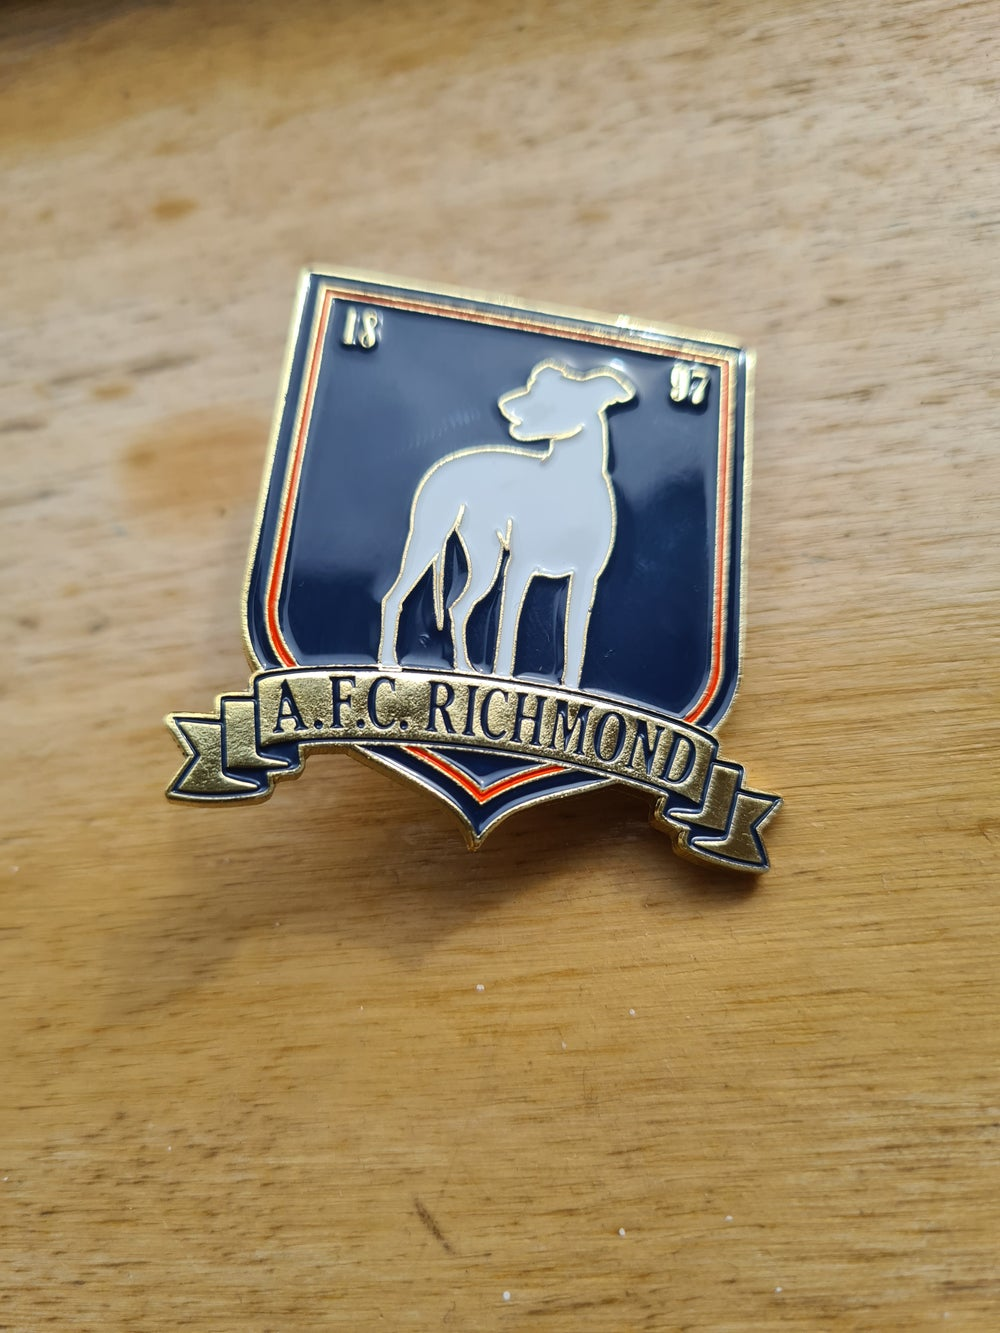 Ted Lasso - AFC Richmond Pin Badge + FREE MYSTERY TED LASSO PIN